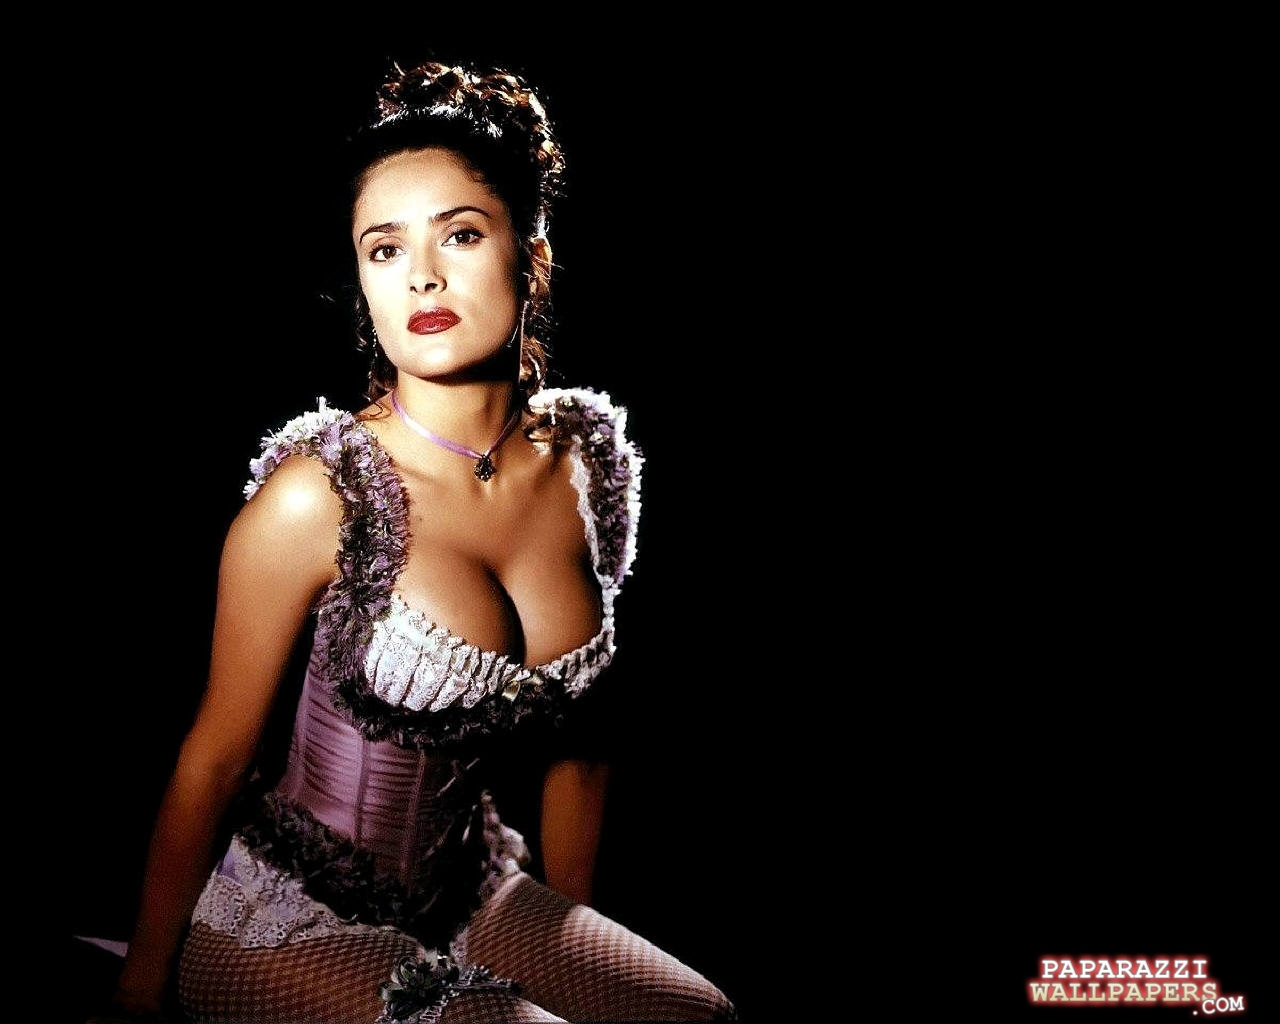 salma hayek wallpapers 041